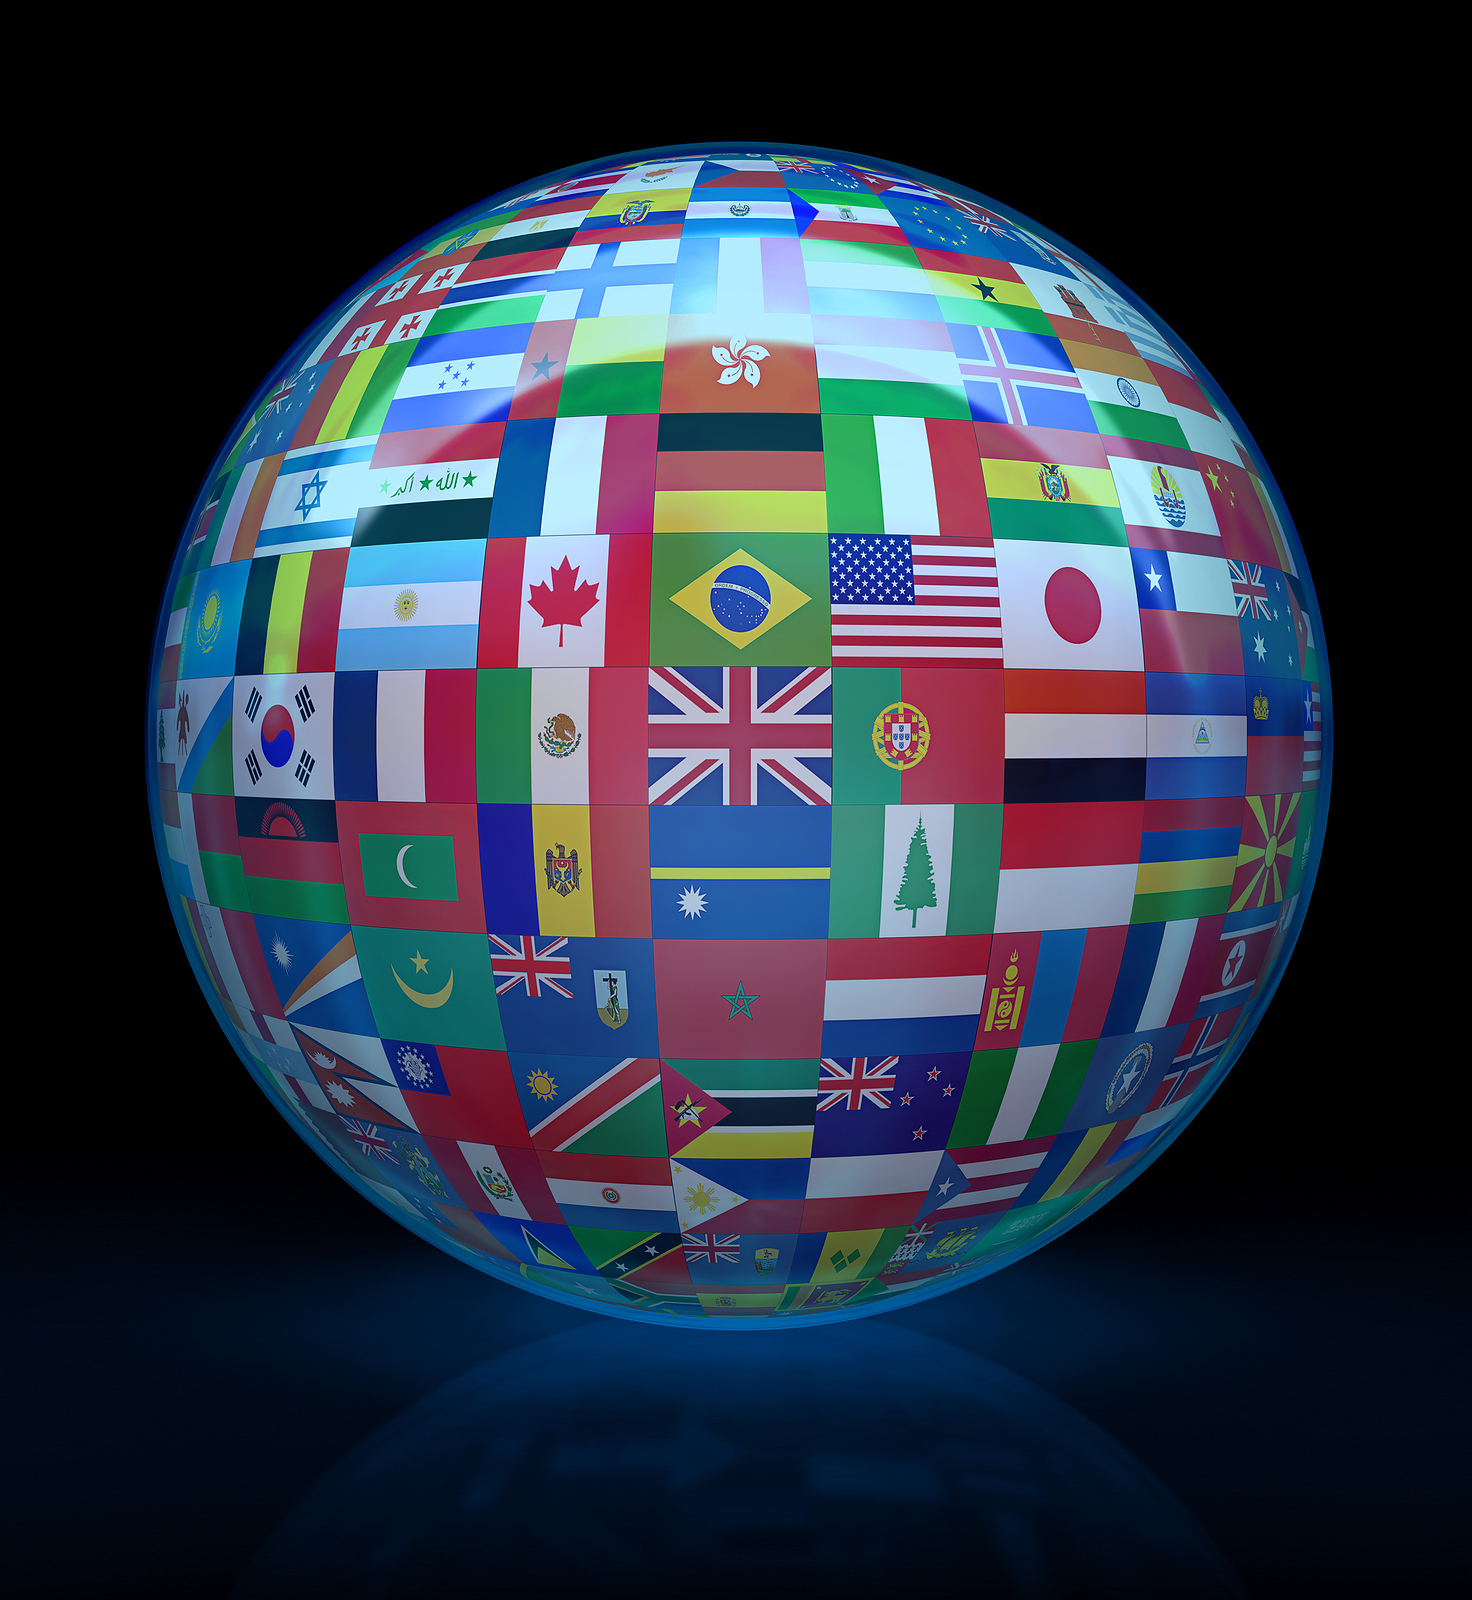 http://www.canertaslaman.com/wp-content/uploads/2013/01/bigstock_the_glass_globe_with_flags_of__20952433.jpg